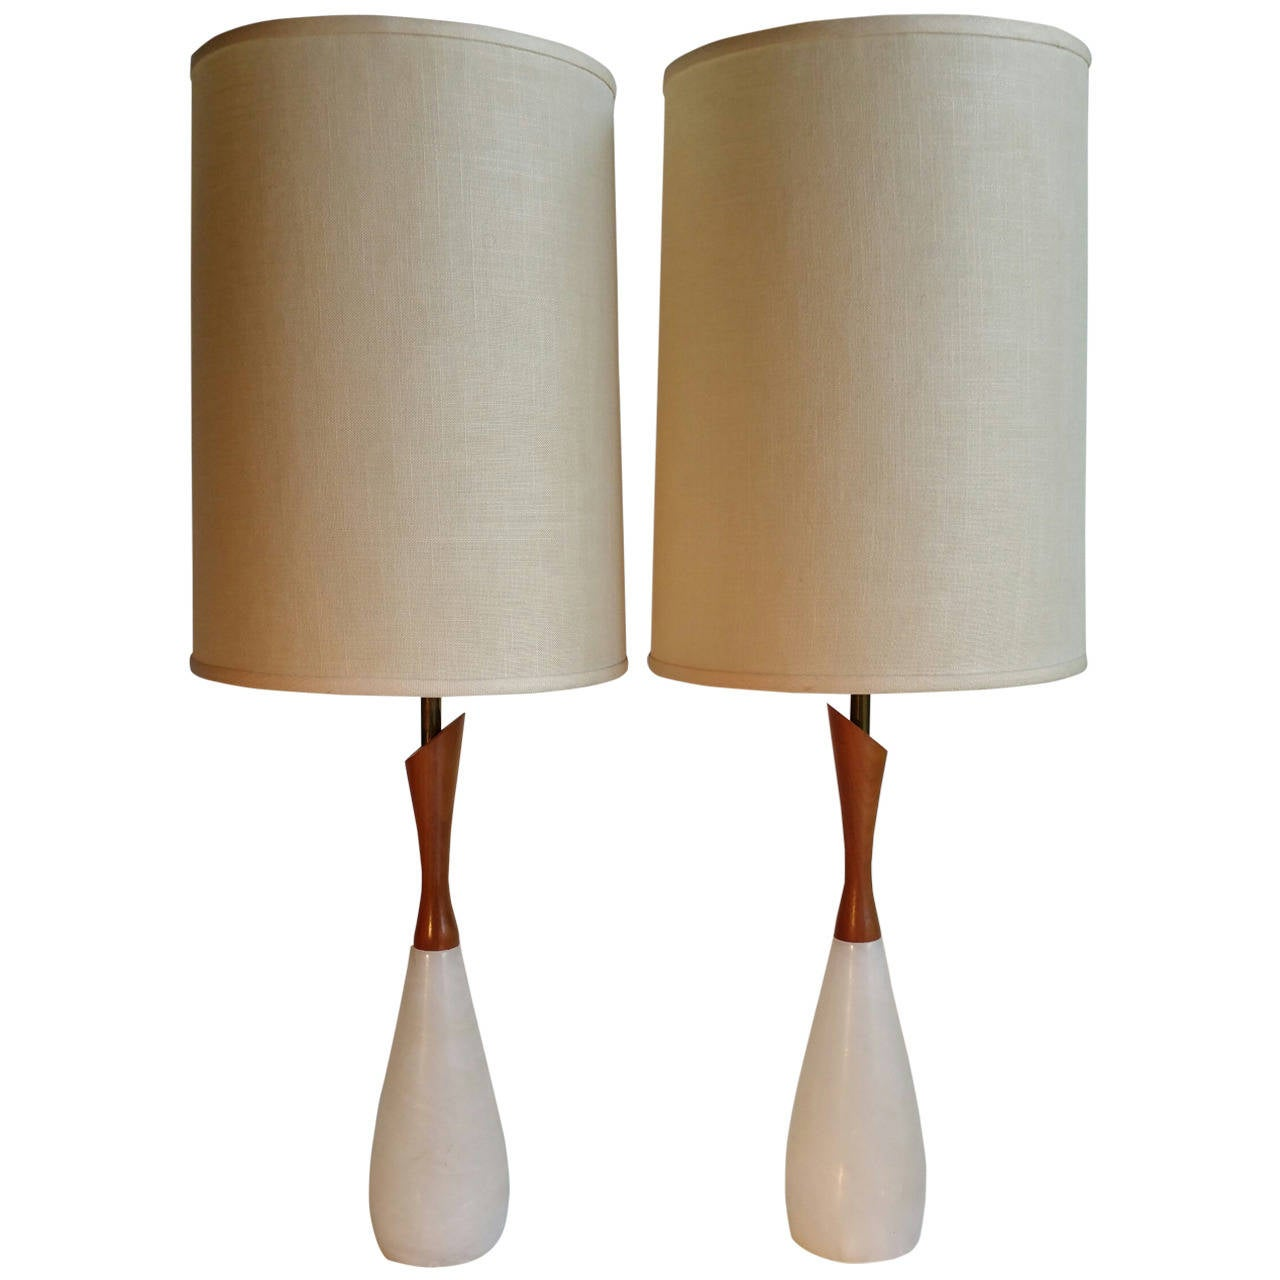 Pair Of Quartz And Teak Mid Century Modern Table Lamps At